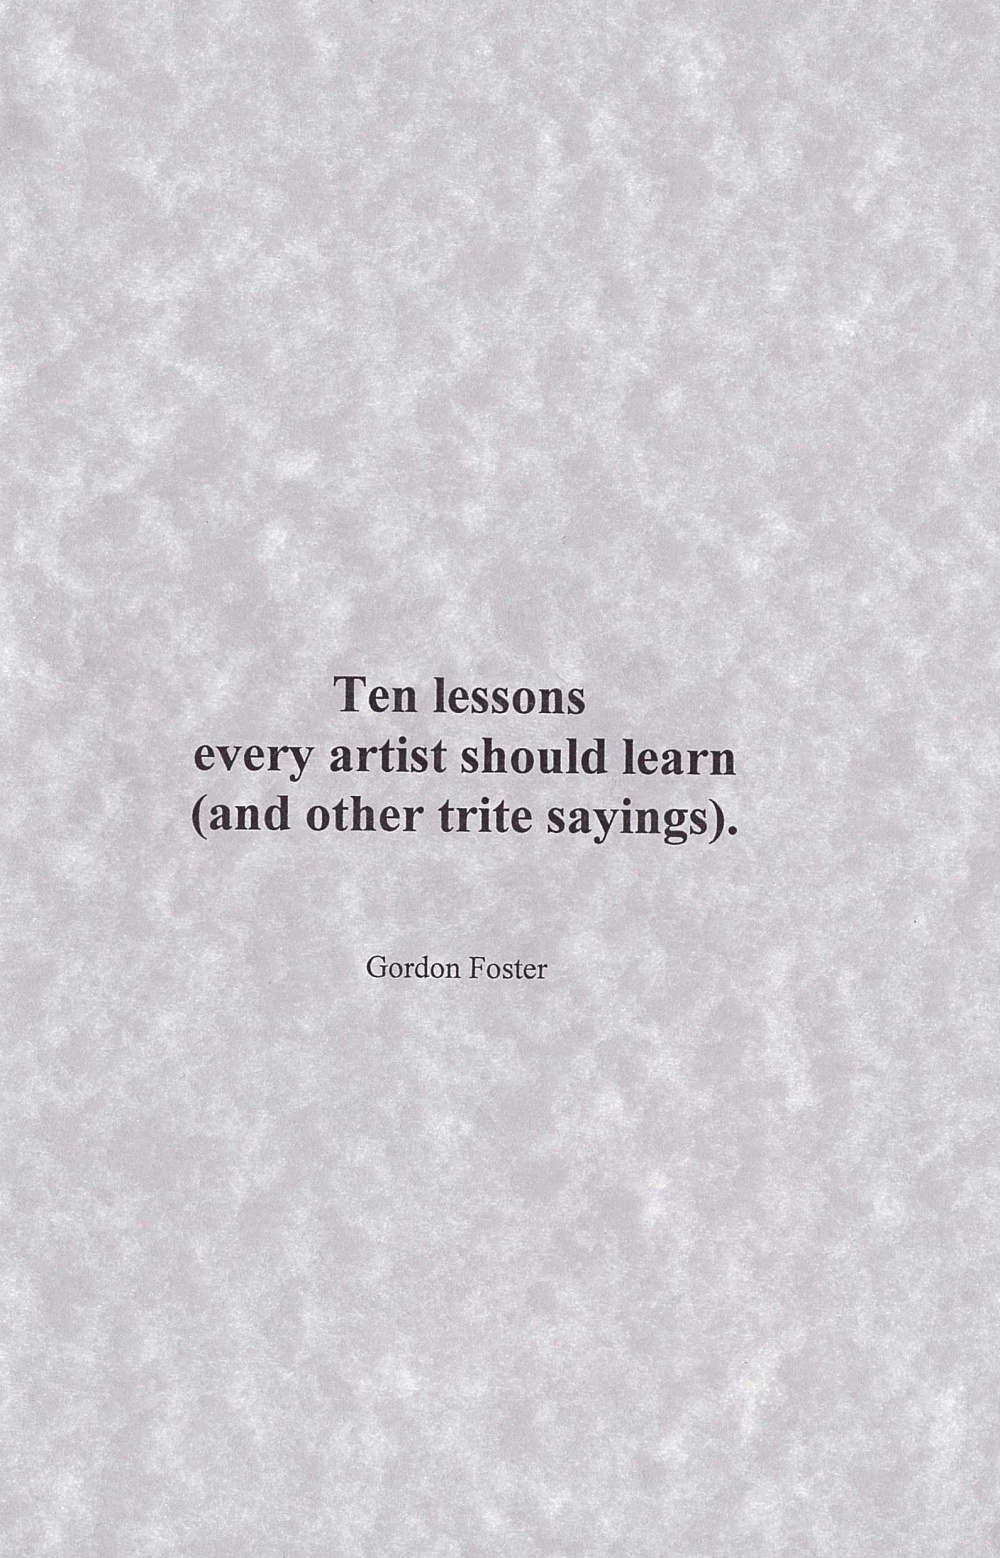 Ten Lessons Every Artist Should Learn (and other trite sayings).